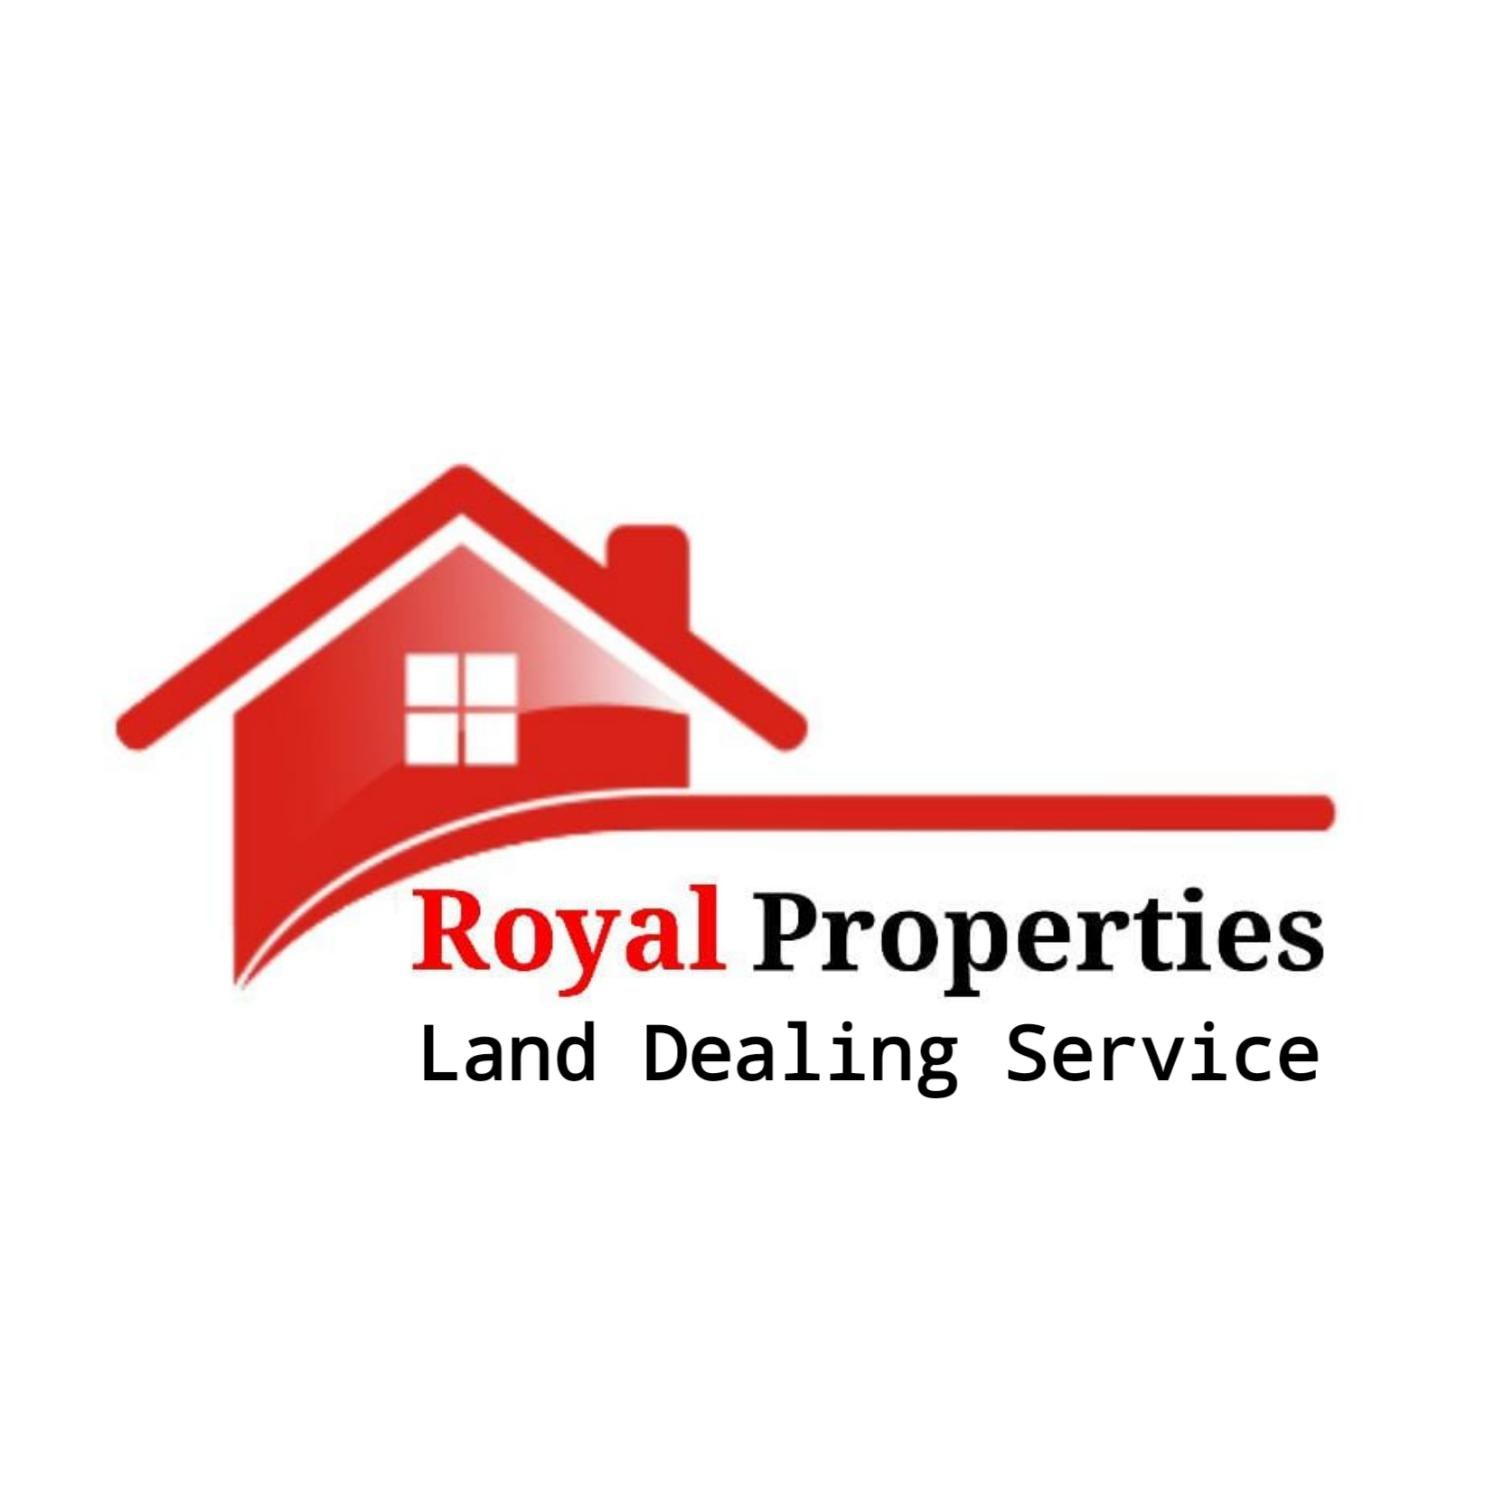 Royal Properties in Nala Nalasopara. Property Dealer in Nala Nalasopara at hindustanproperty.com.